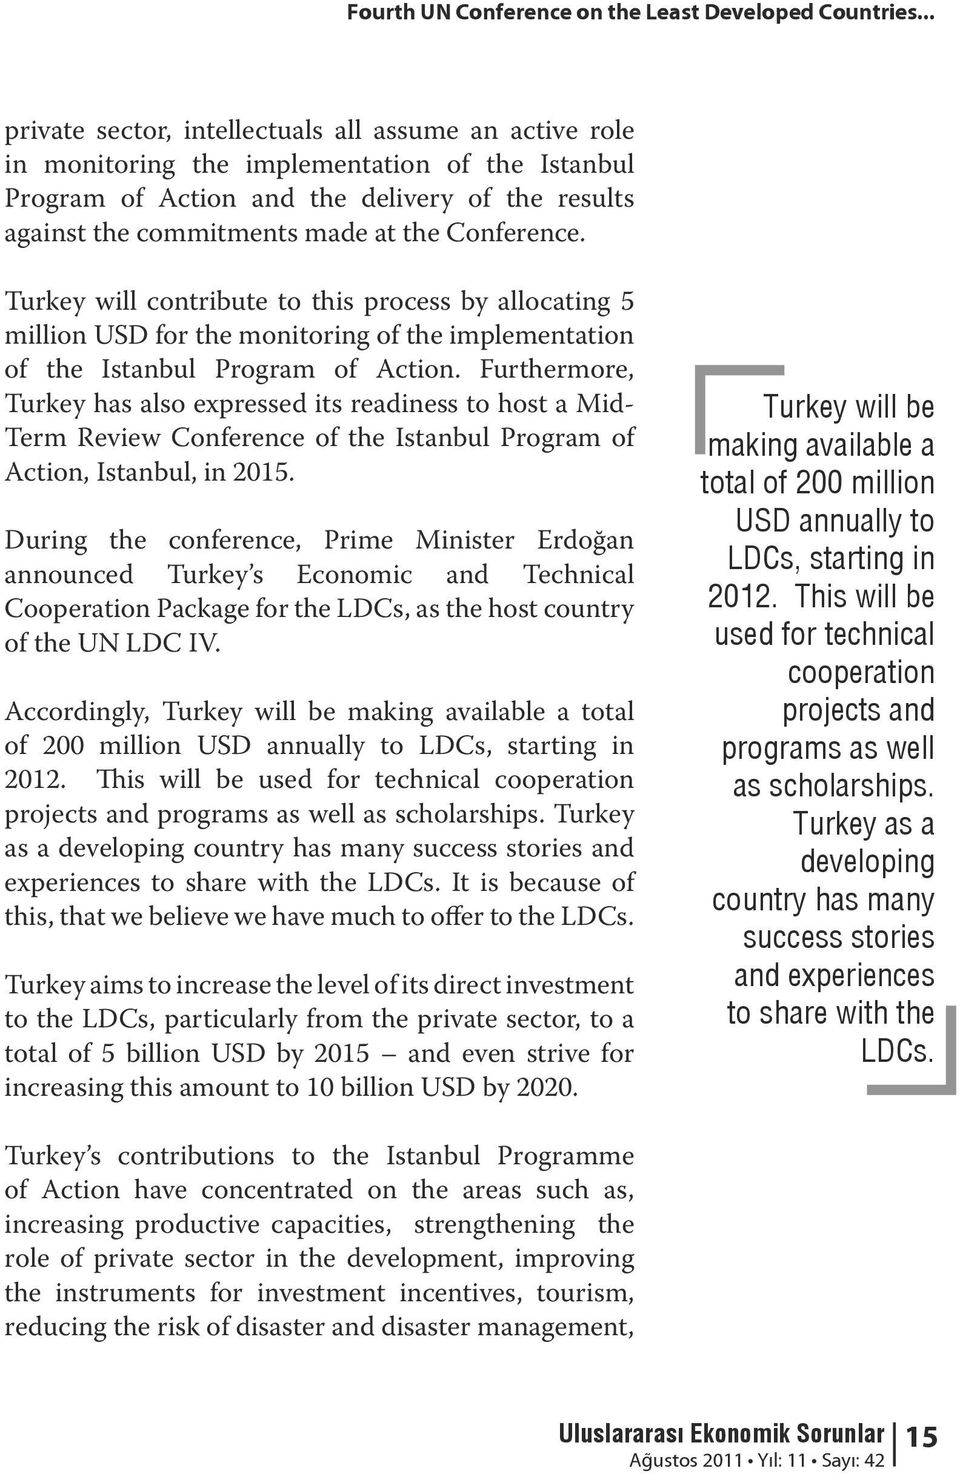 Conference. Turkey will contribute to this process by allocating 5 million USD for the monitoring of the implementation of the Istanbul Program of Action.